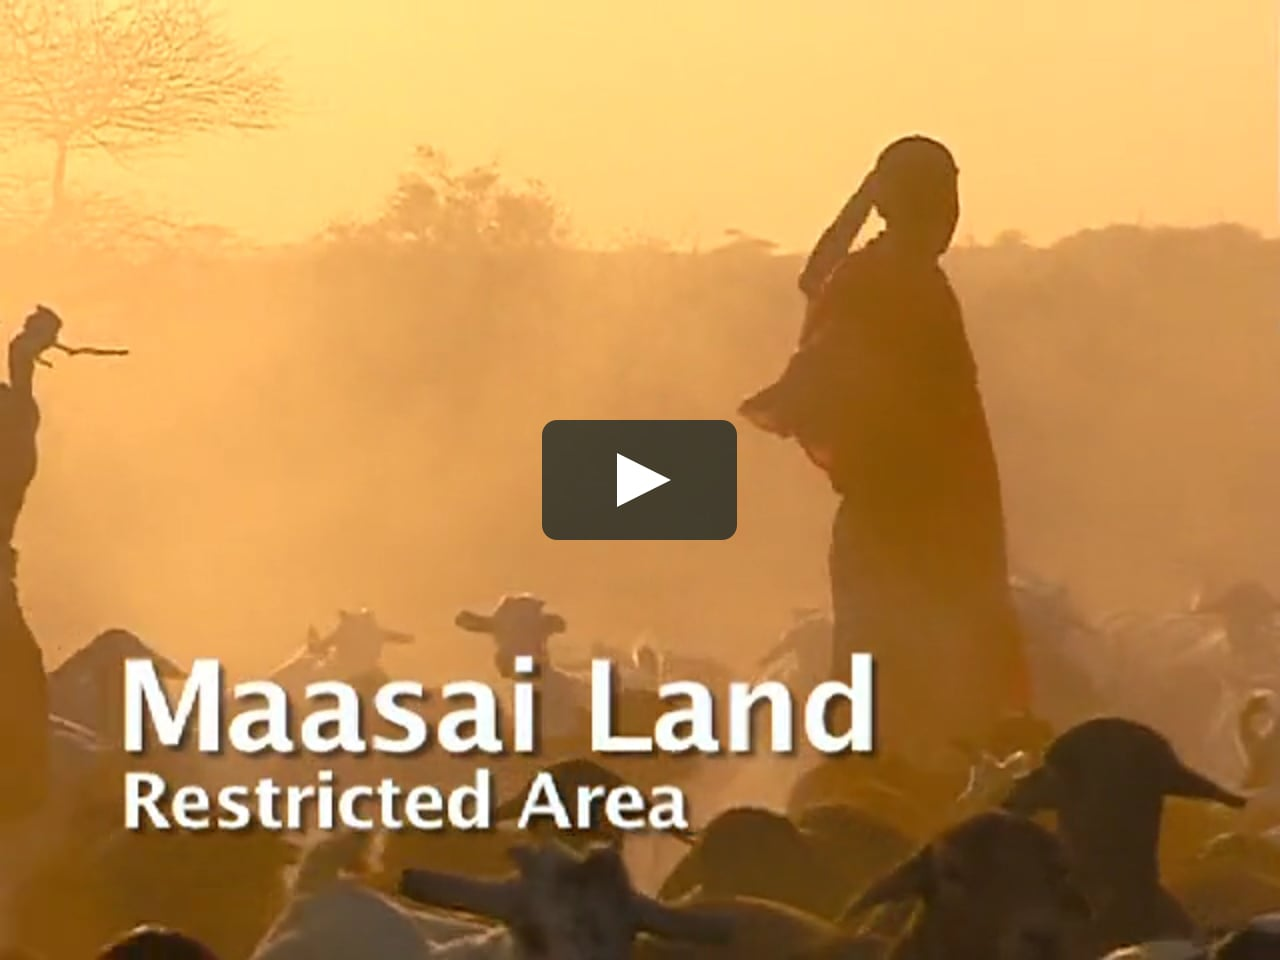 Maasailand Restricted Area